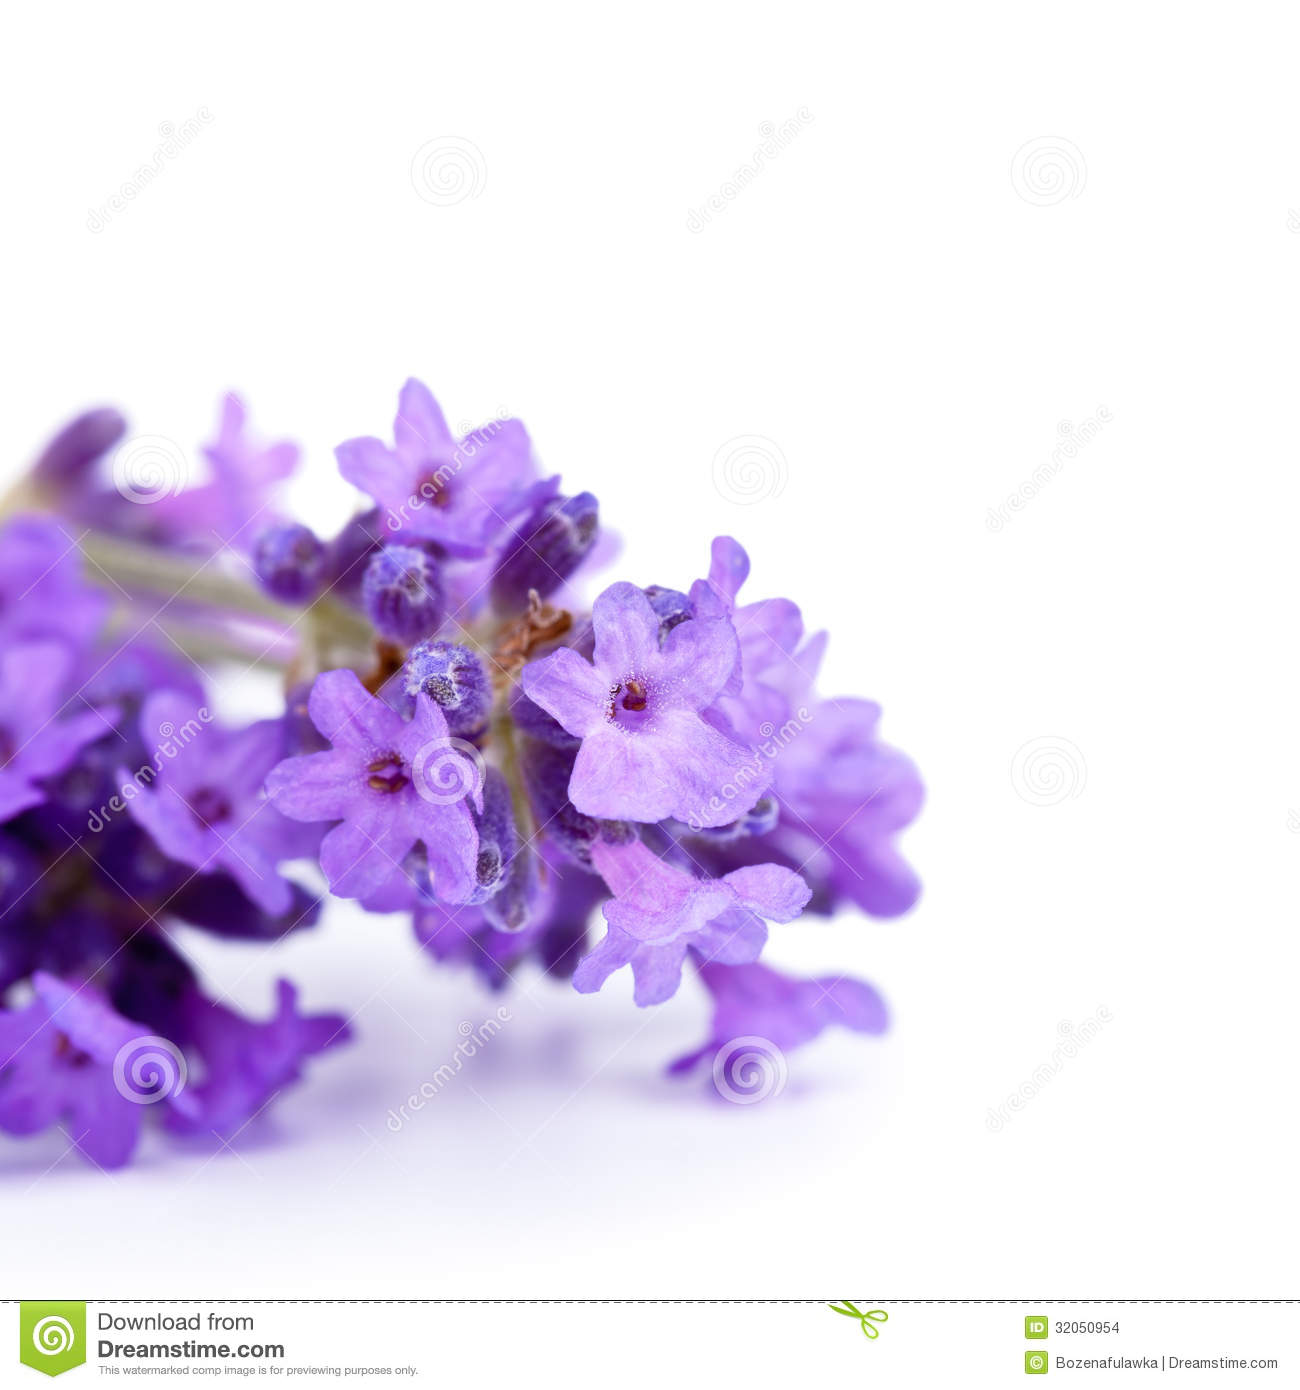 lavender flowers stock images  image, Beautiful flower